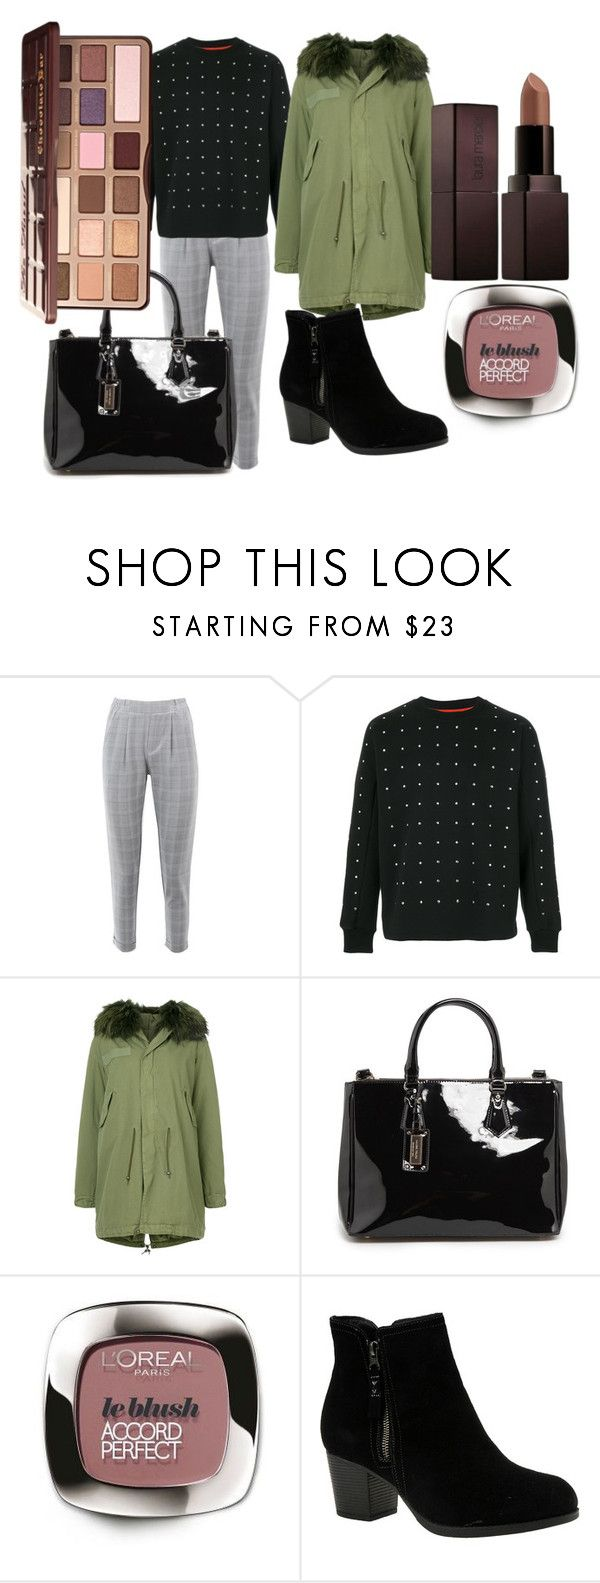 """""""OUTFIT OF THE DAY 26.DEC.18"""" by charo-garcia on Polyvore featuring moda, Nasty Gal, Diesel, Mr & Mrs Italy, MANGO, Skechers, Laura Mercier y Too Faced Cosmetics"""